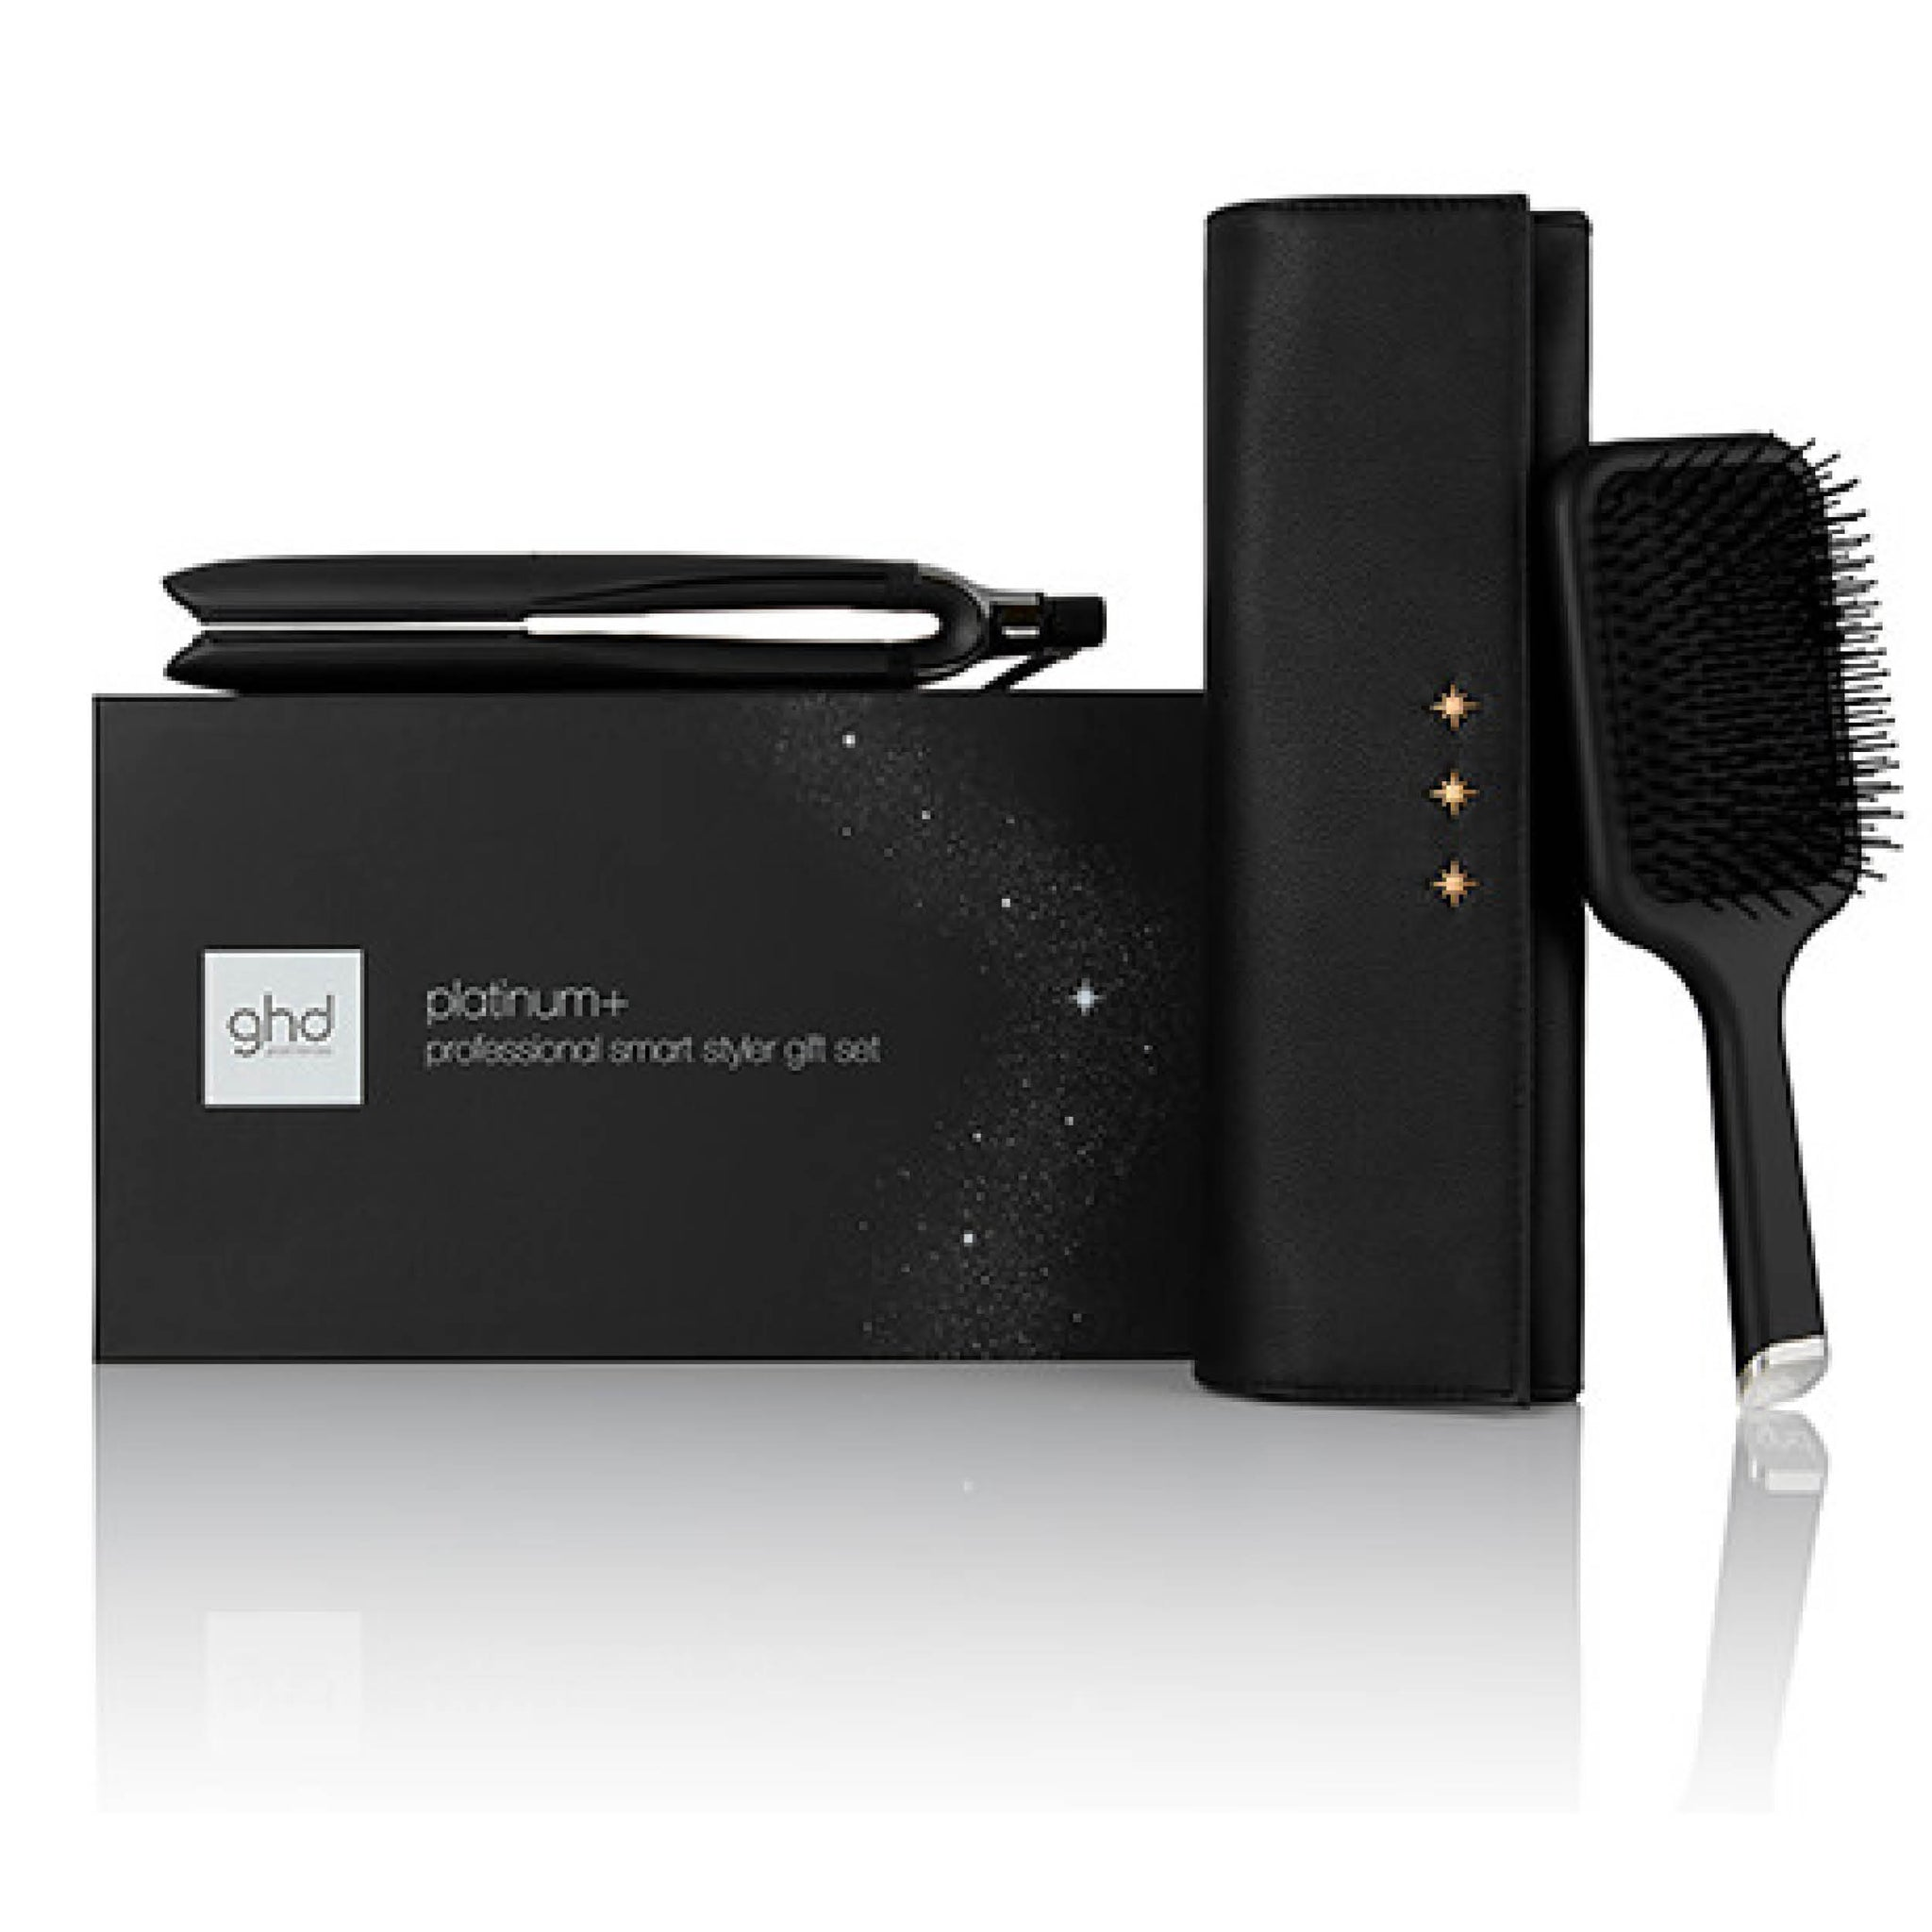 GHD Platinum+ Professional Smart Styler Gift Set